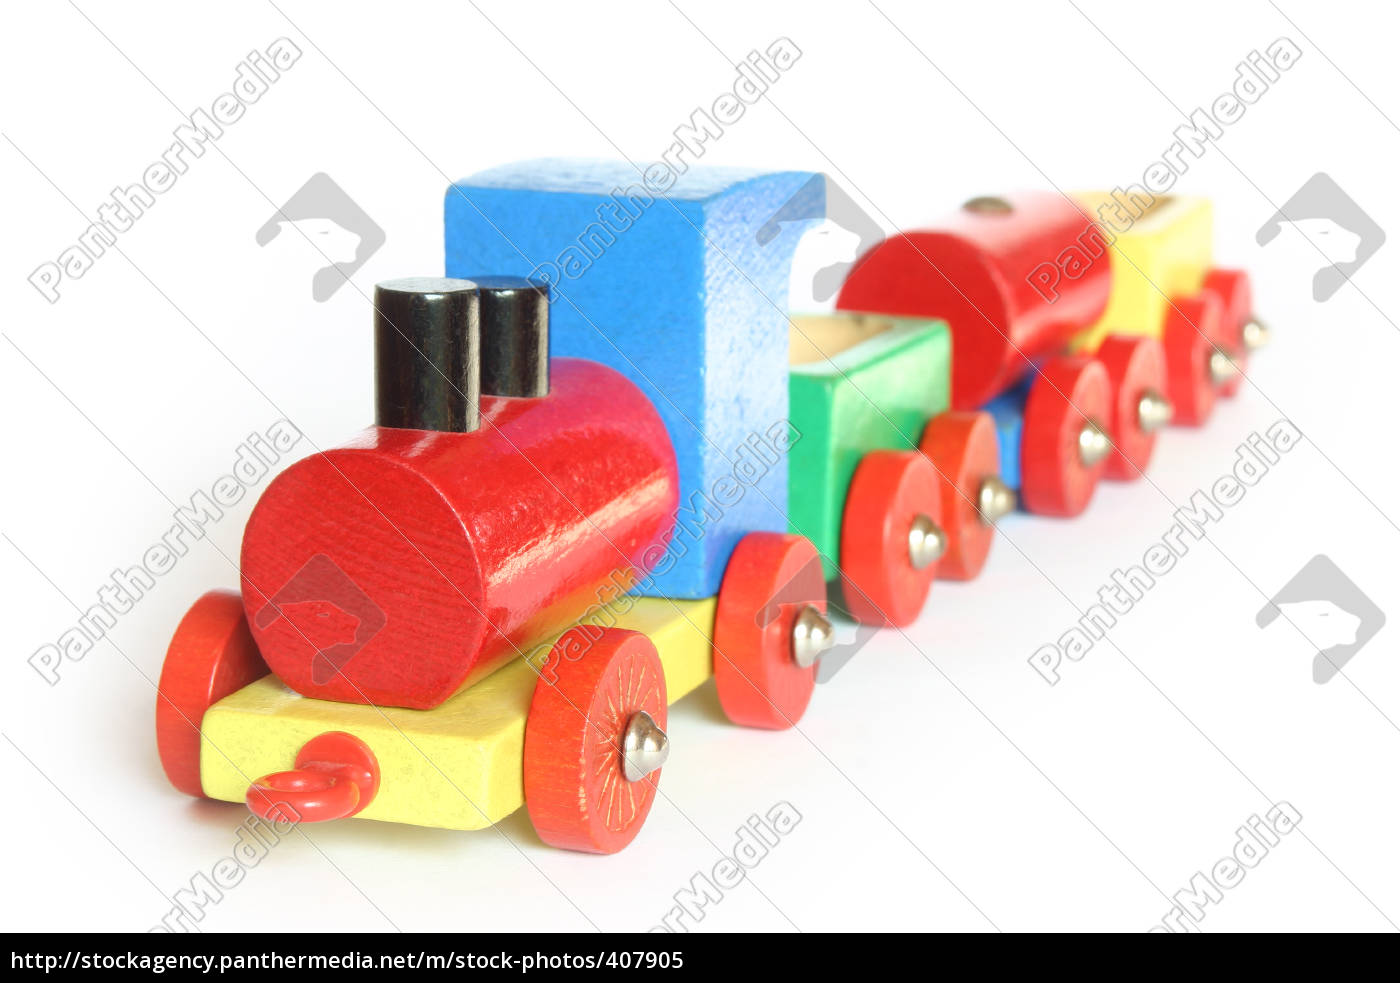 kids, wooden, train - 407905